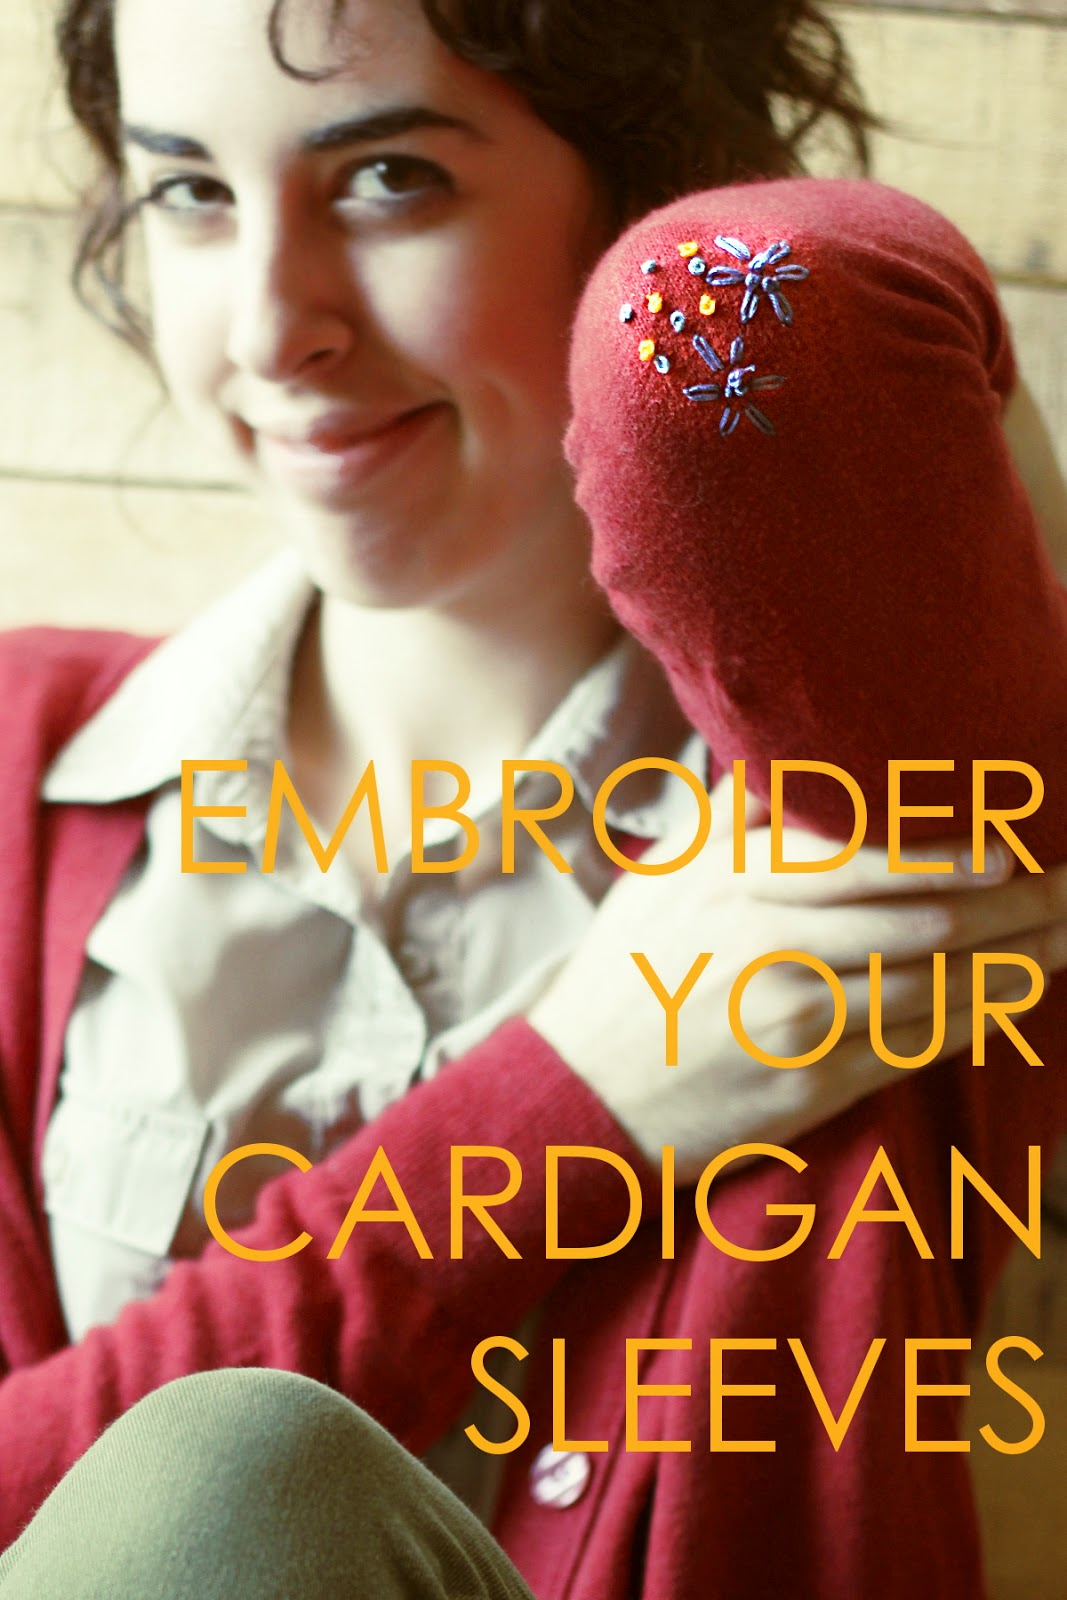 Embroider Your Cardigan Sleeves!